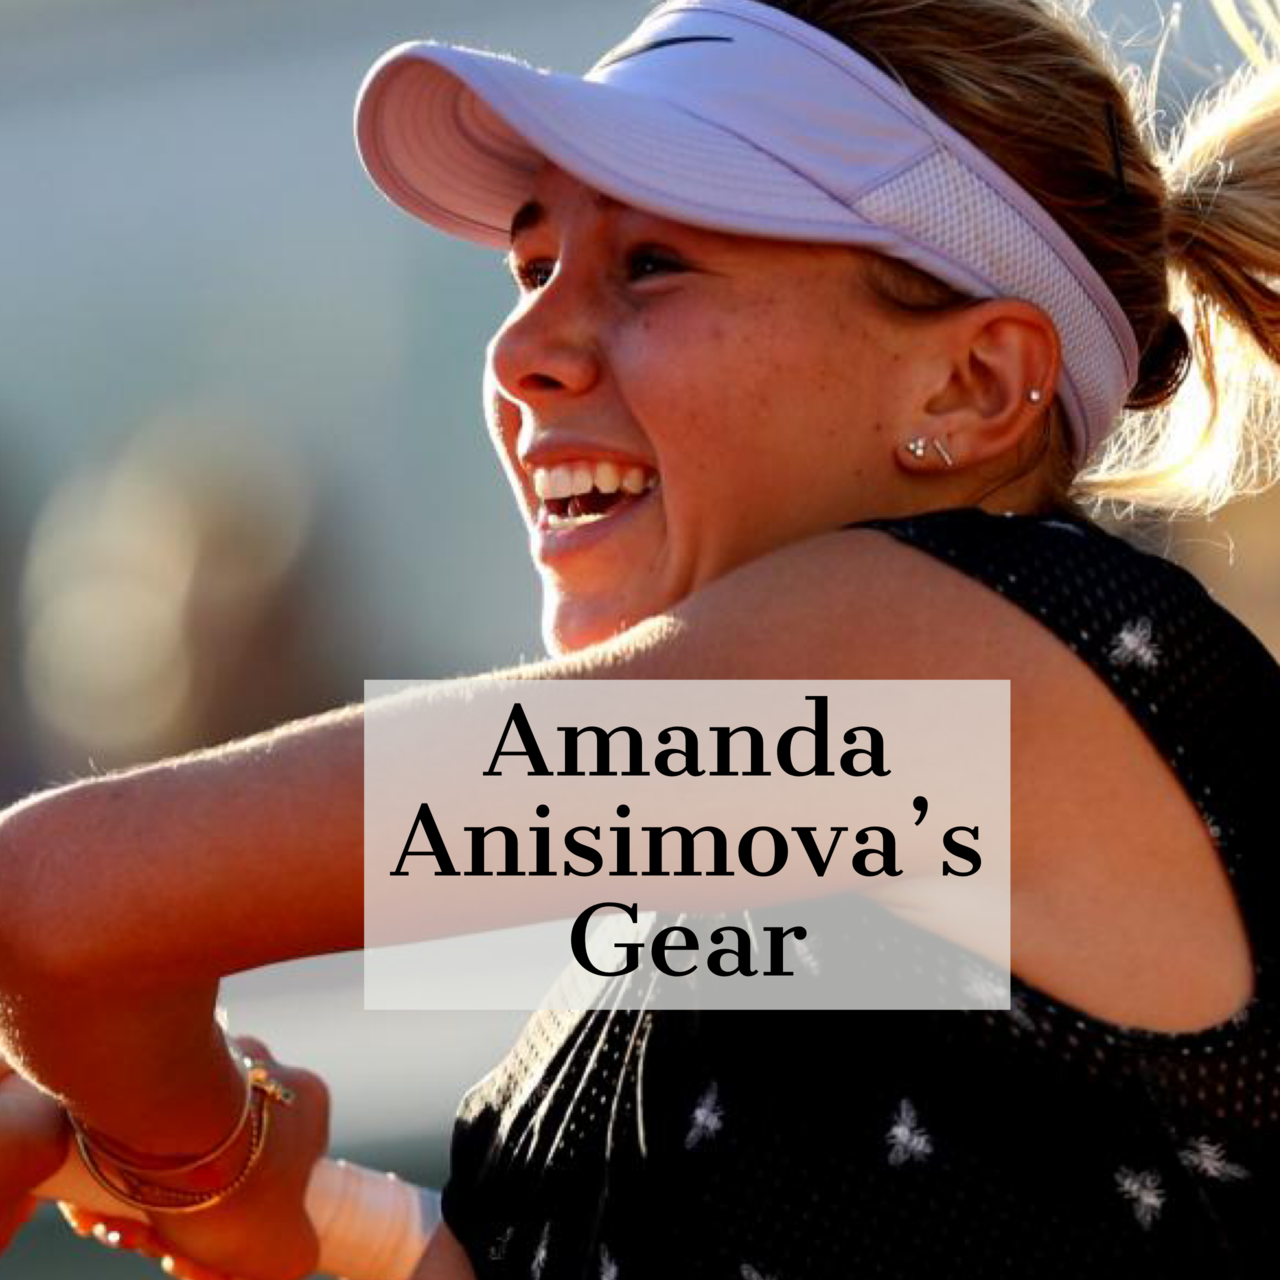 Who Is Amanda Anisimova?